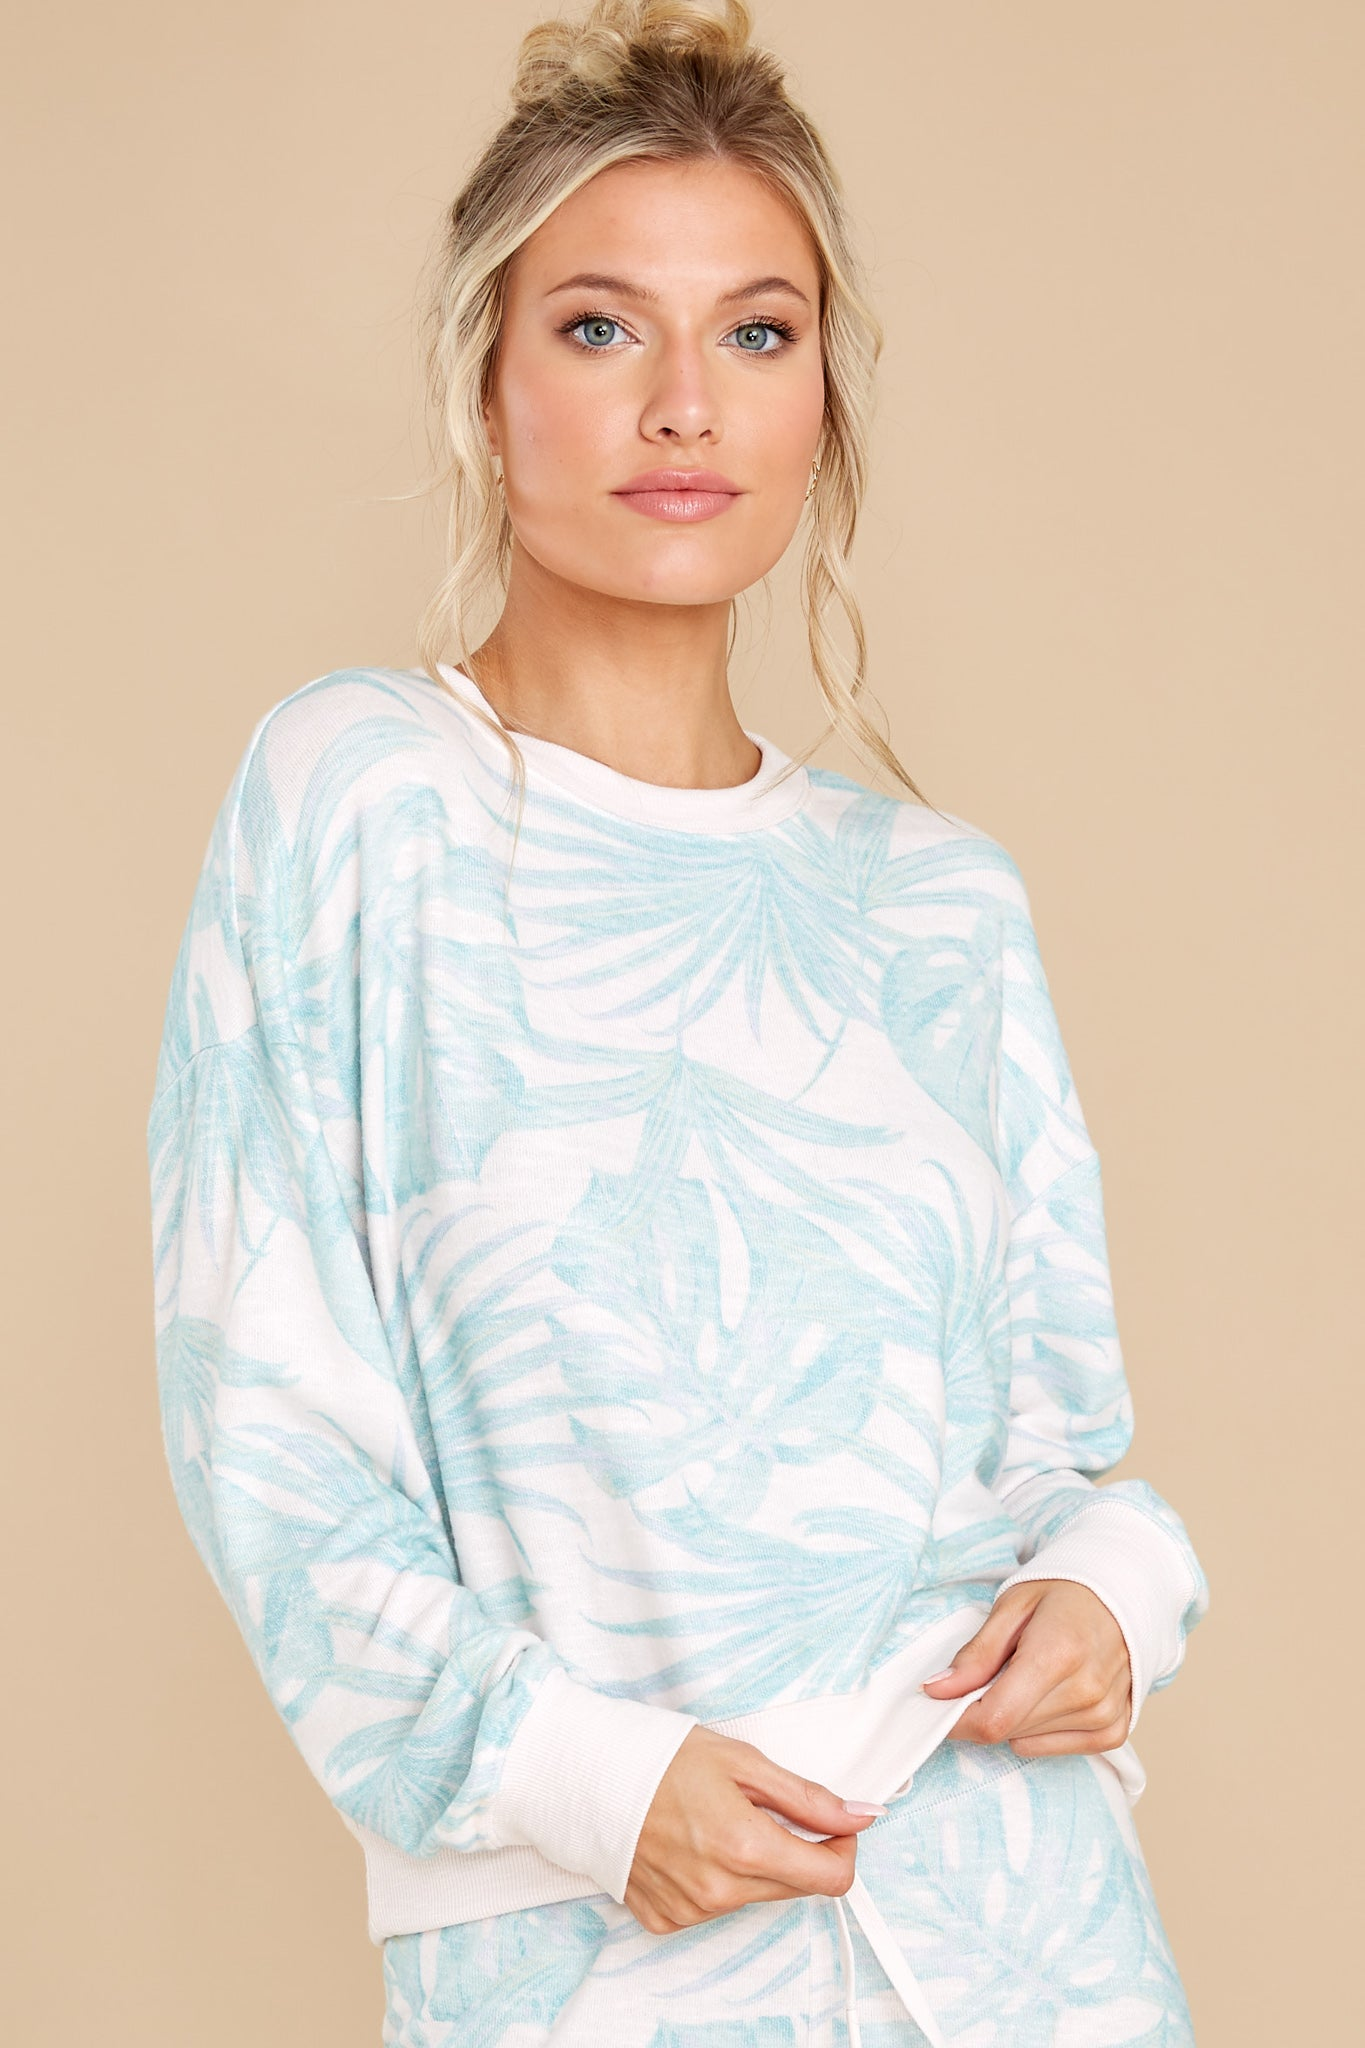 7 Elle Pink Mist Palm Pullover at reddress.com